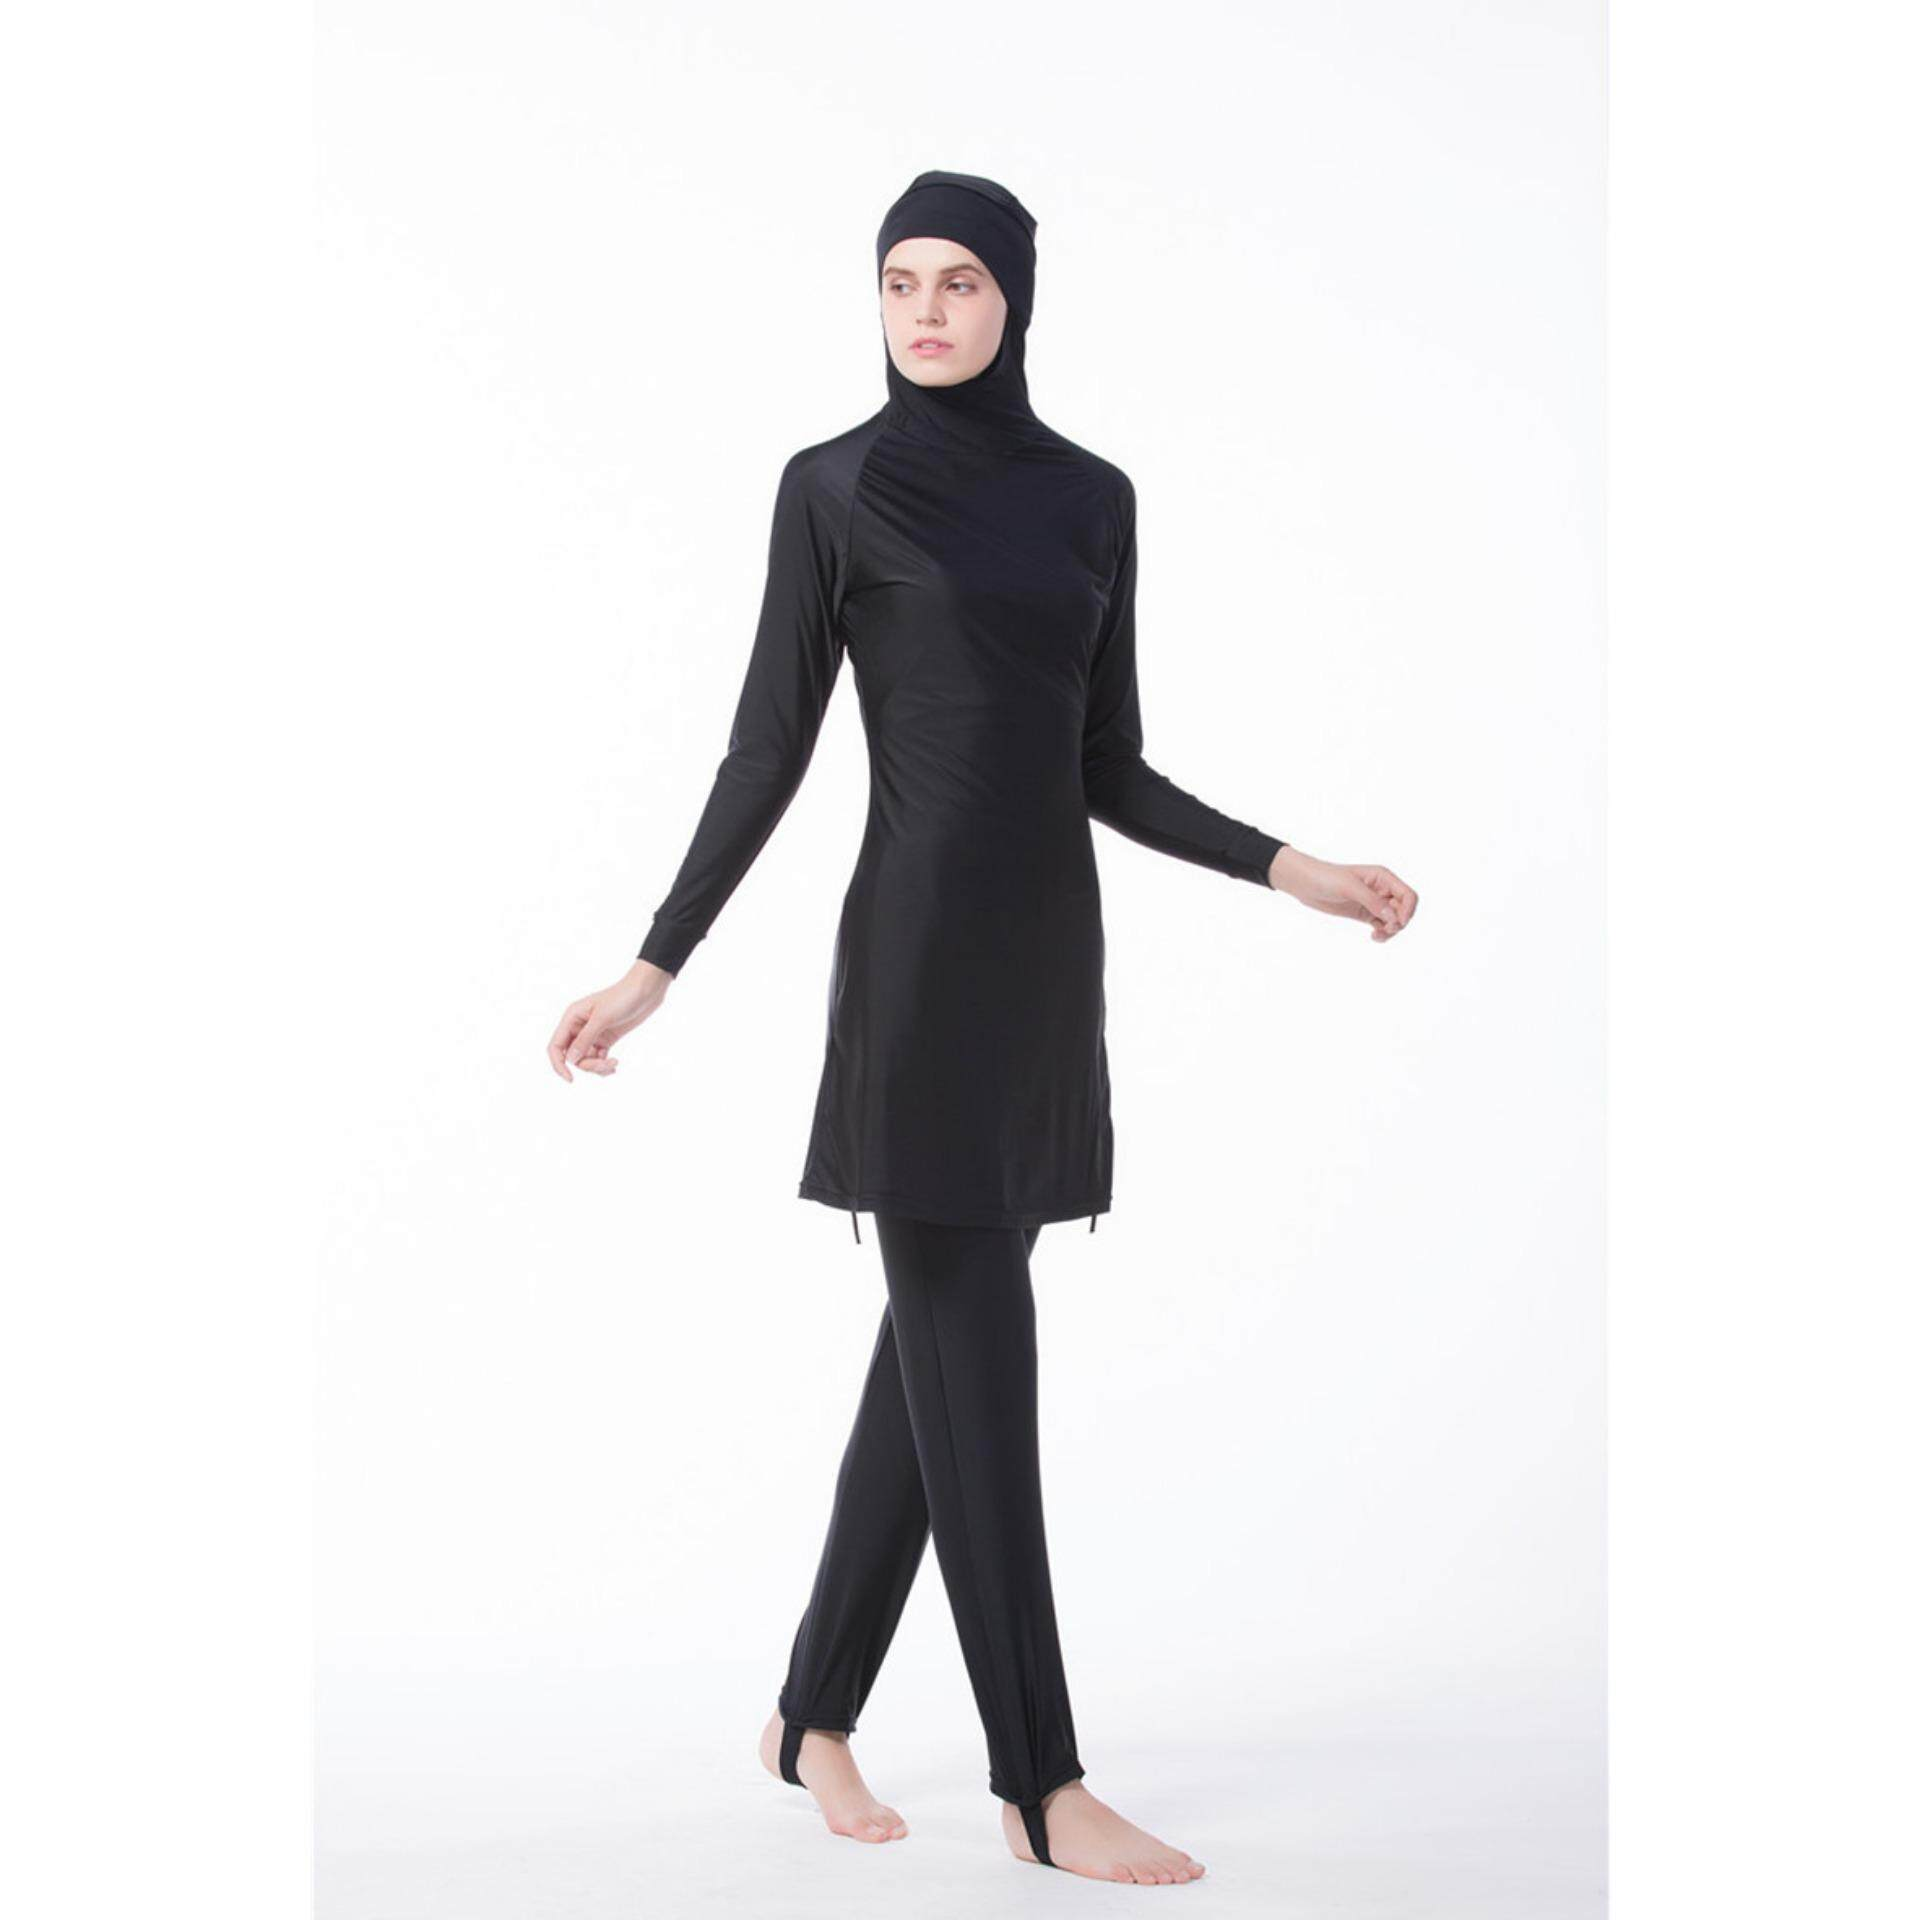 390adc2707d ... Young Women Muslim Swimwear Beach Bathing Suit Muslimah Islamic  Swimsuit Swim Surf Wear Sport Clothing burqini